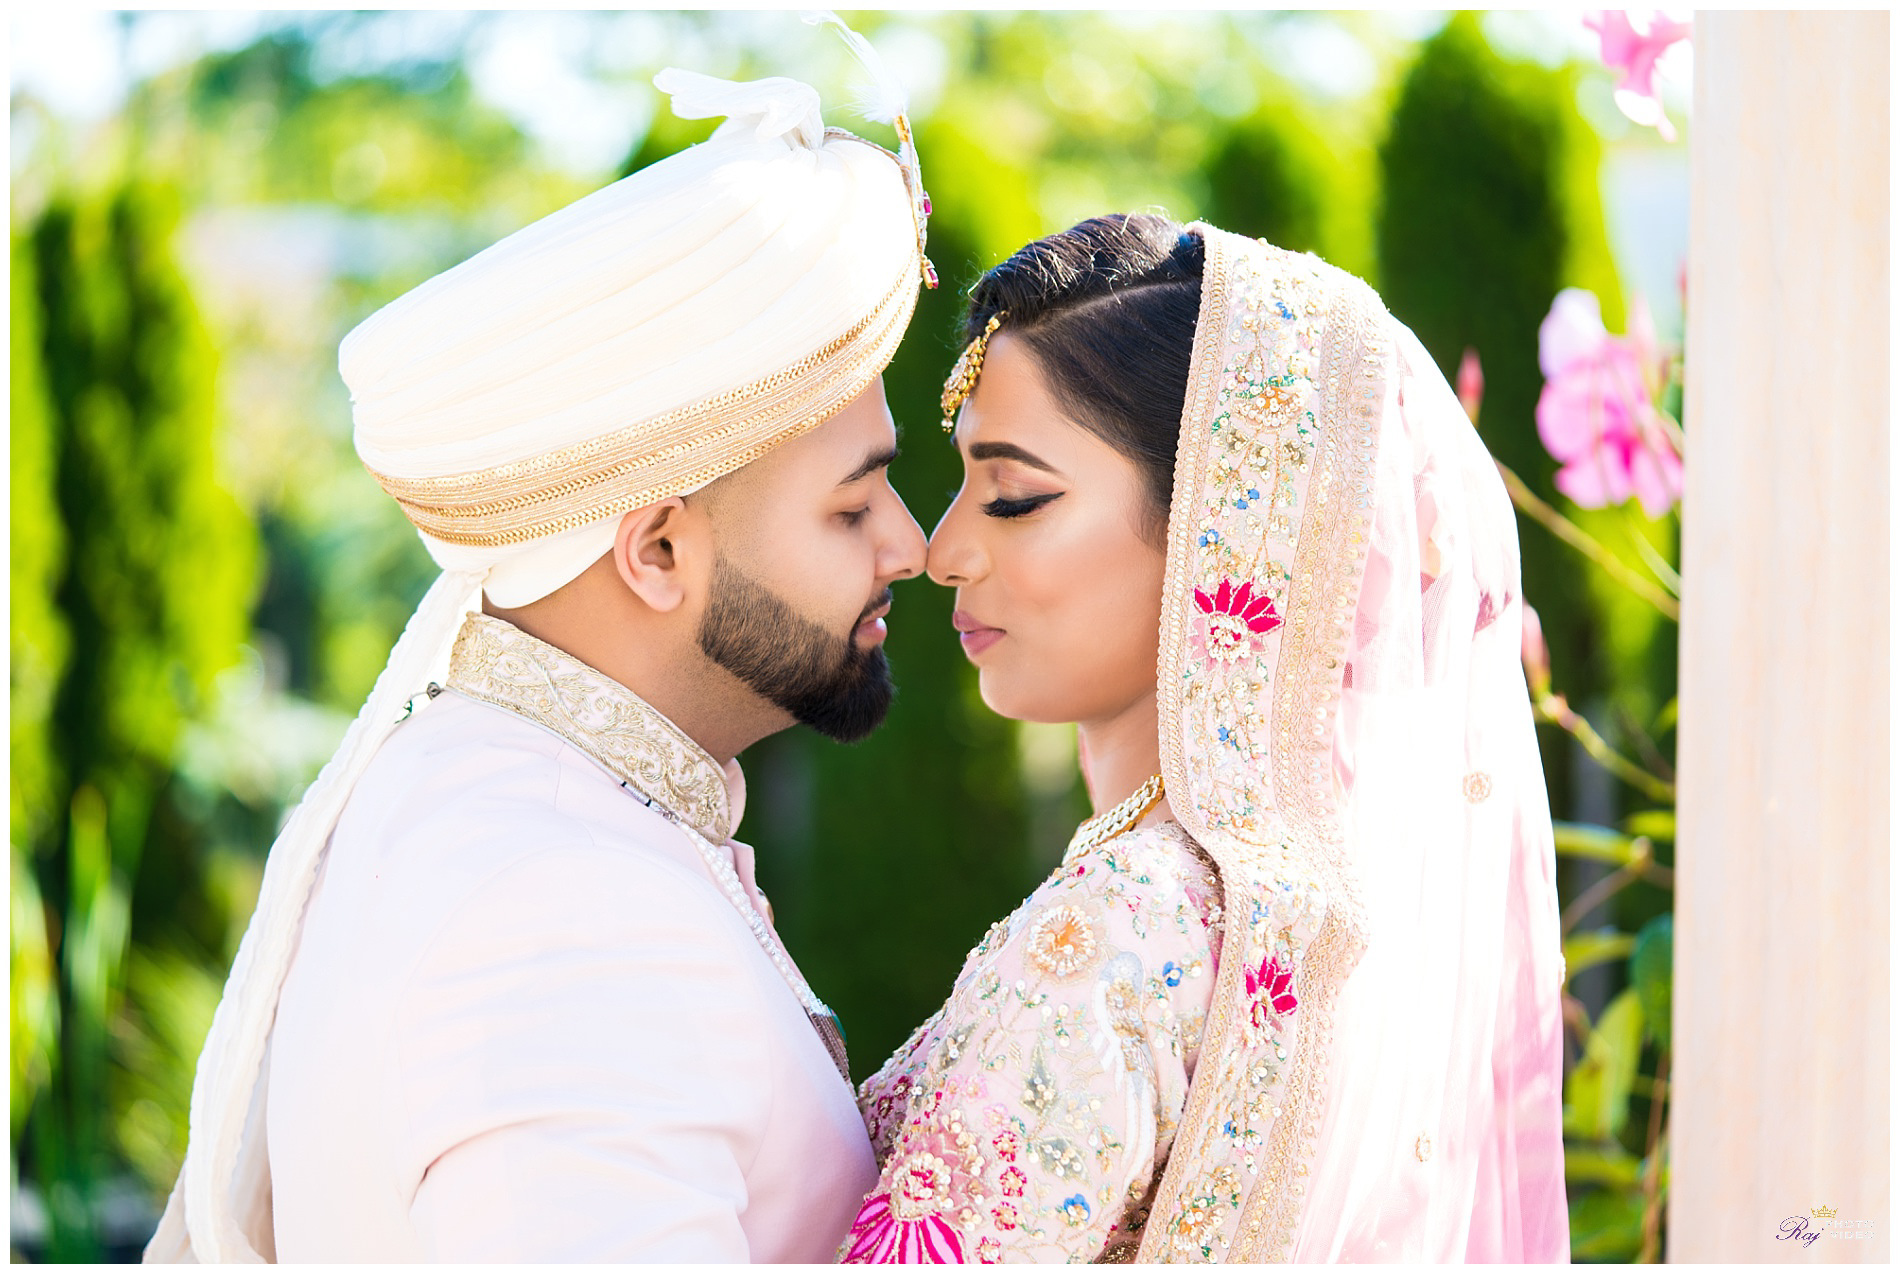 F Marigold Somerset Nj Hindu Wedding Nidhi Rudra